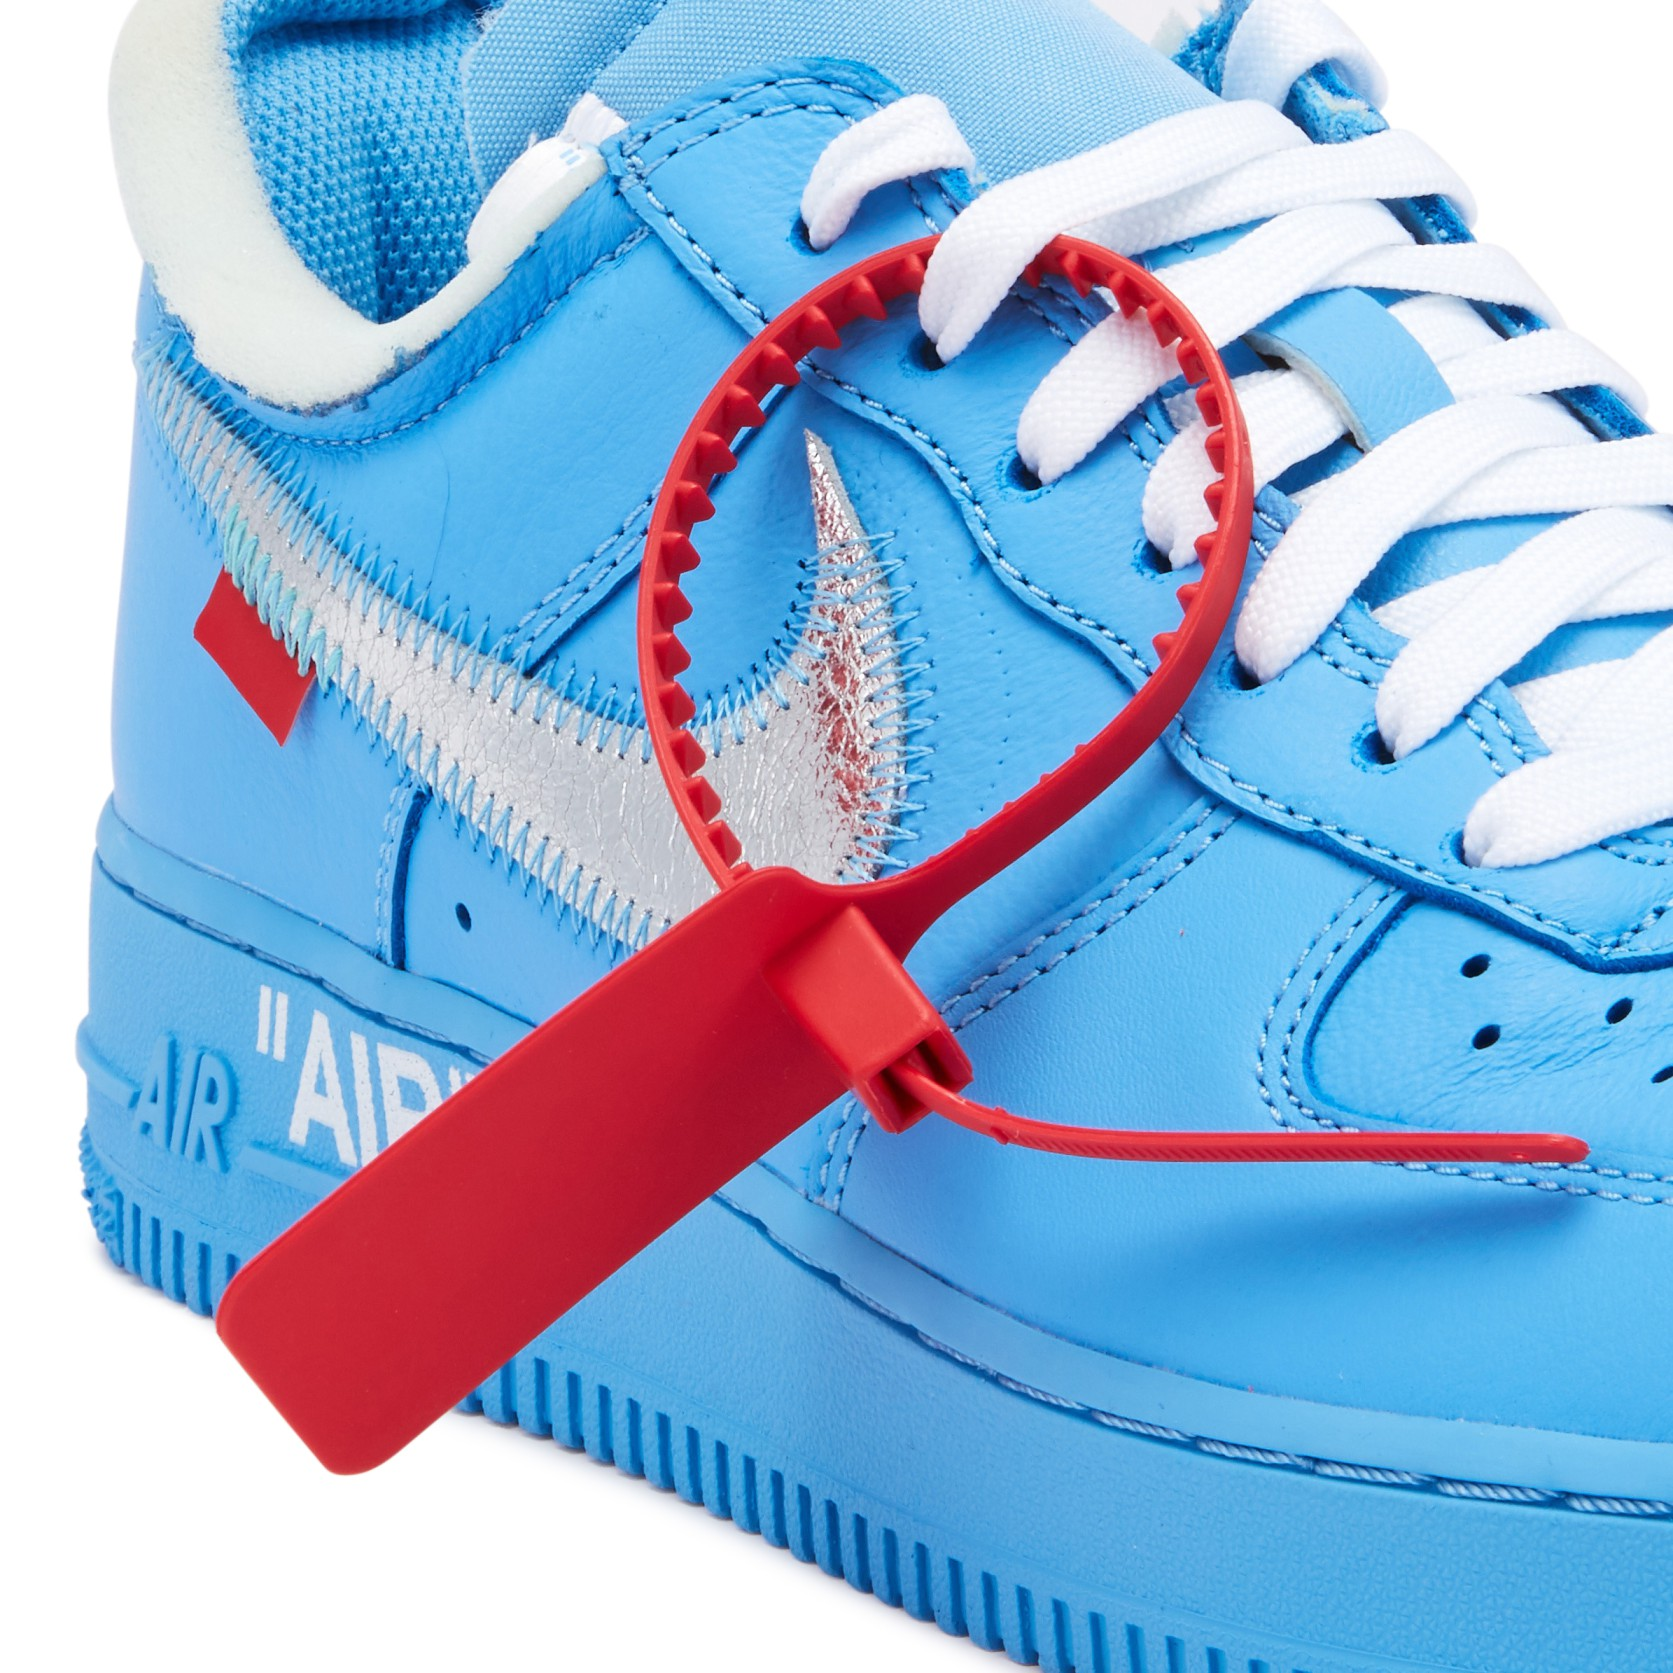 off-white-air-force-1-low-mca-8865